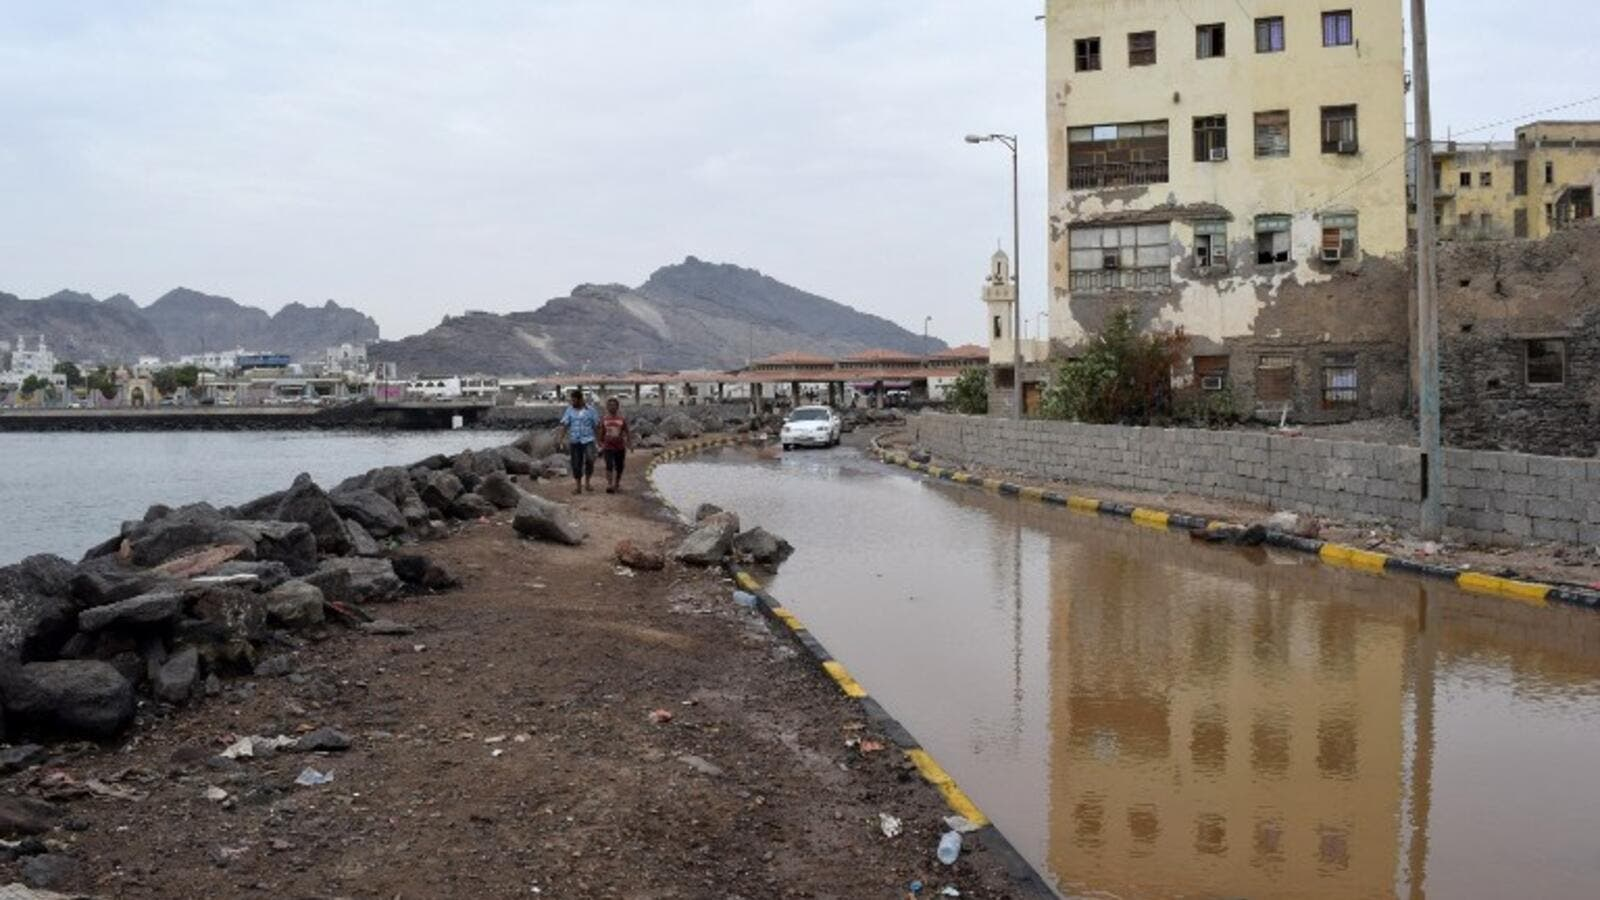 Yemen's southern port city of Aden remains flooded from cyclone Chapala, and another cyclone is on the way. (AFP/Saleh Al-Obeidi)